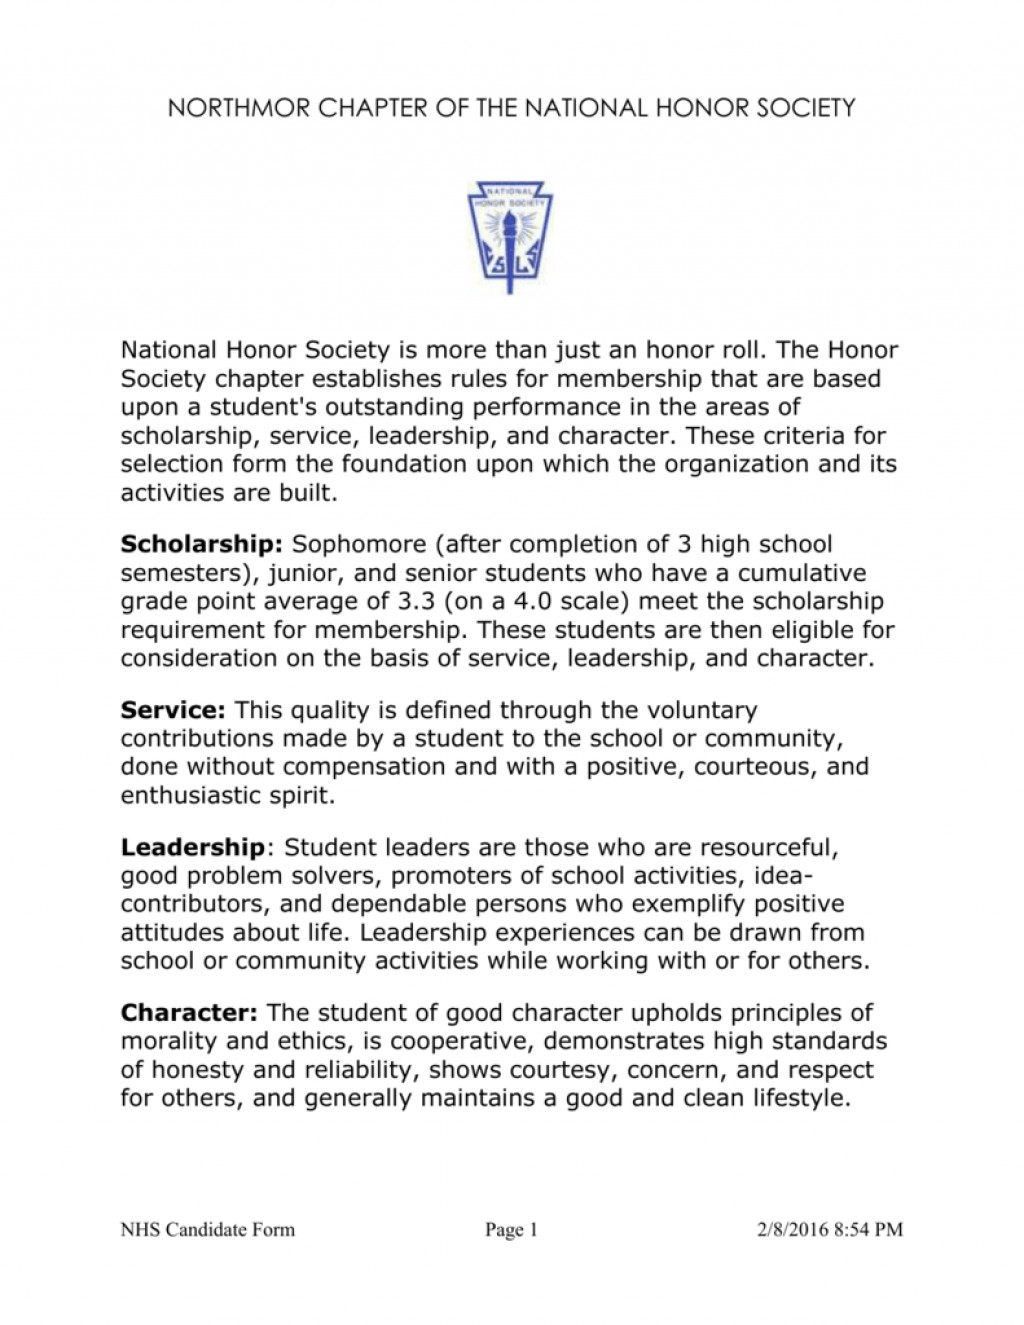 012 National Honor Society Character Essay 006813659 1 Staggering Examples Large